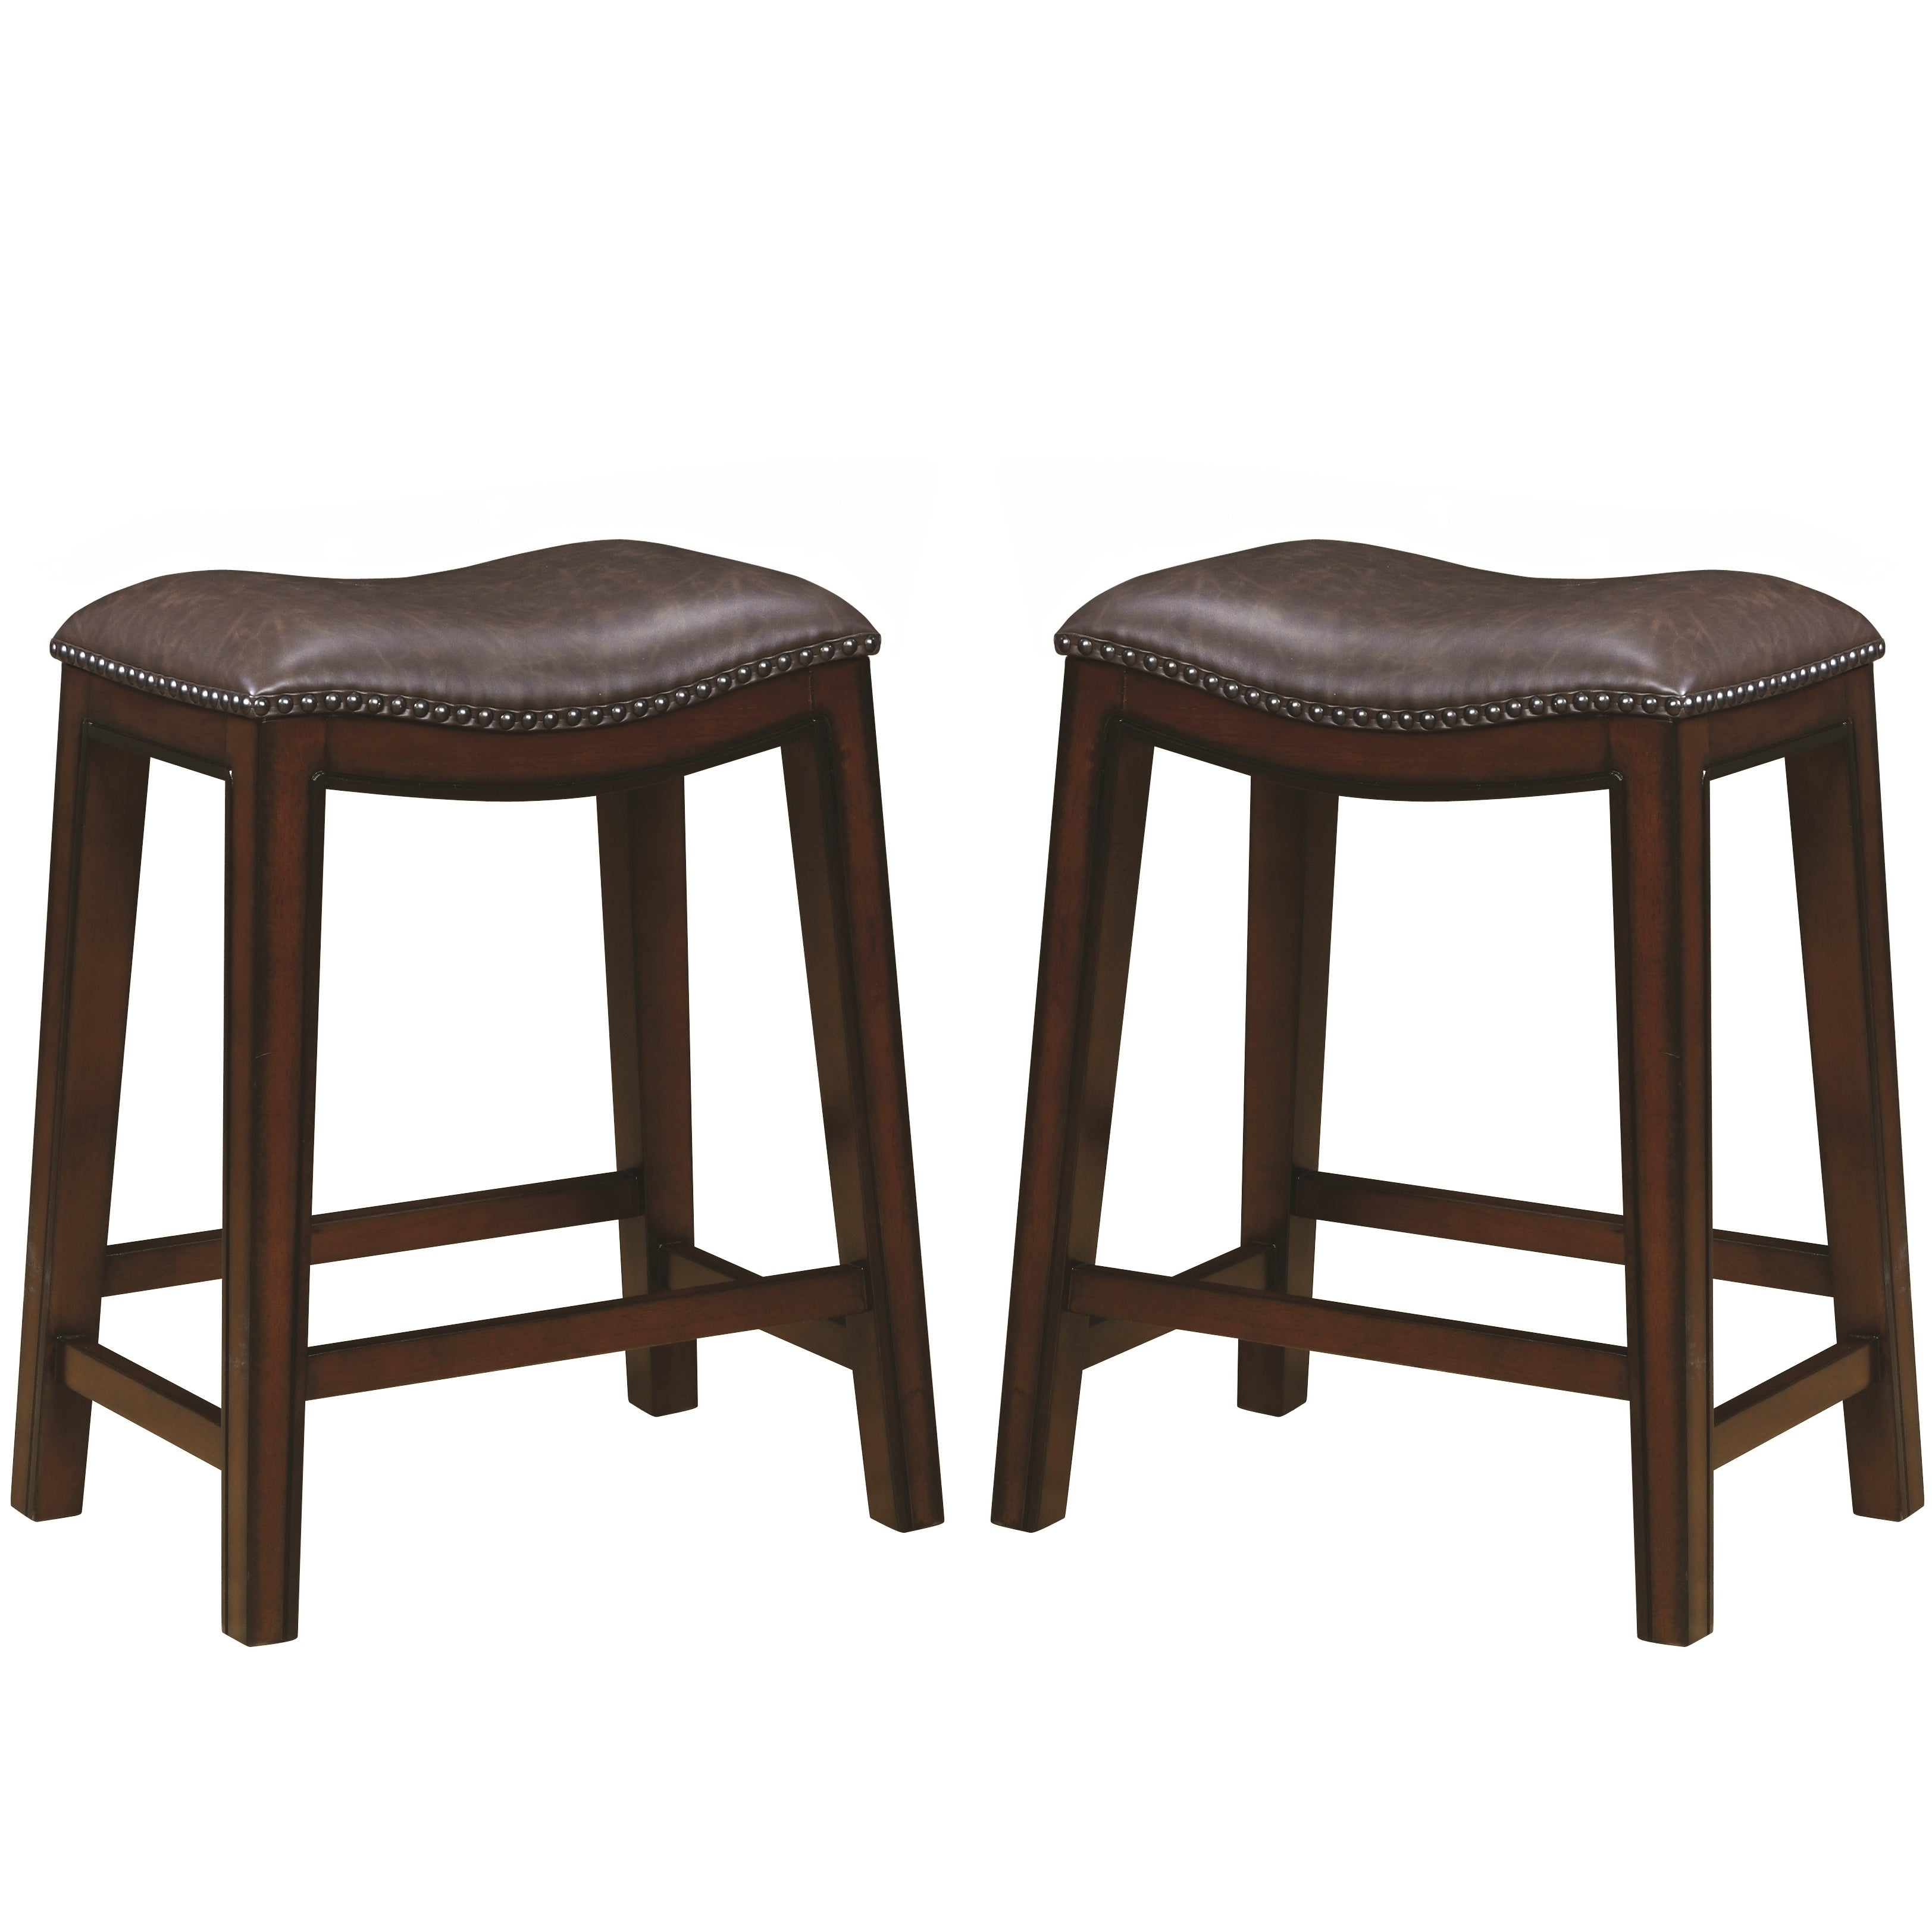 Admirable Saddle Design Brown Seat Counter Height Dining Stools With Nailhead Trim Set Of 2 Uwap Interior Chair Design Uwaporg